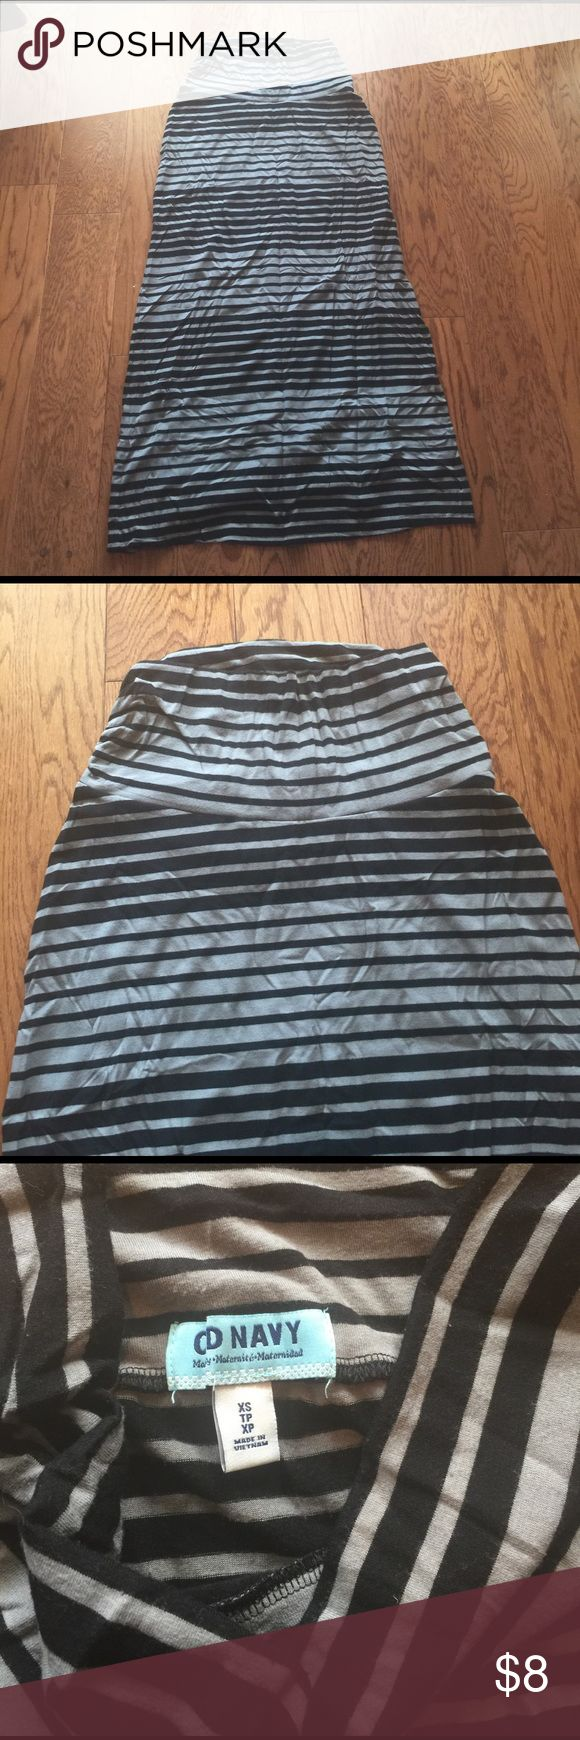 Old Navy Maternity maxi skirt. Great condition. Old Navy Maternity maxi skirt. Black and gray striped. Has slit in one side (shown in last pic). Really soft and comfy. Size XS. Old Navy Skirts